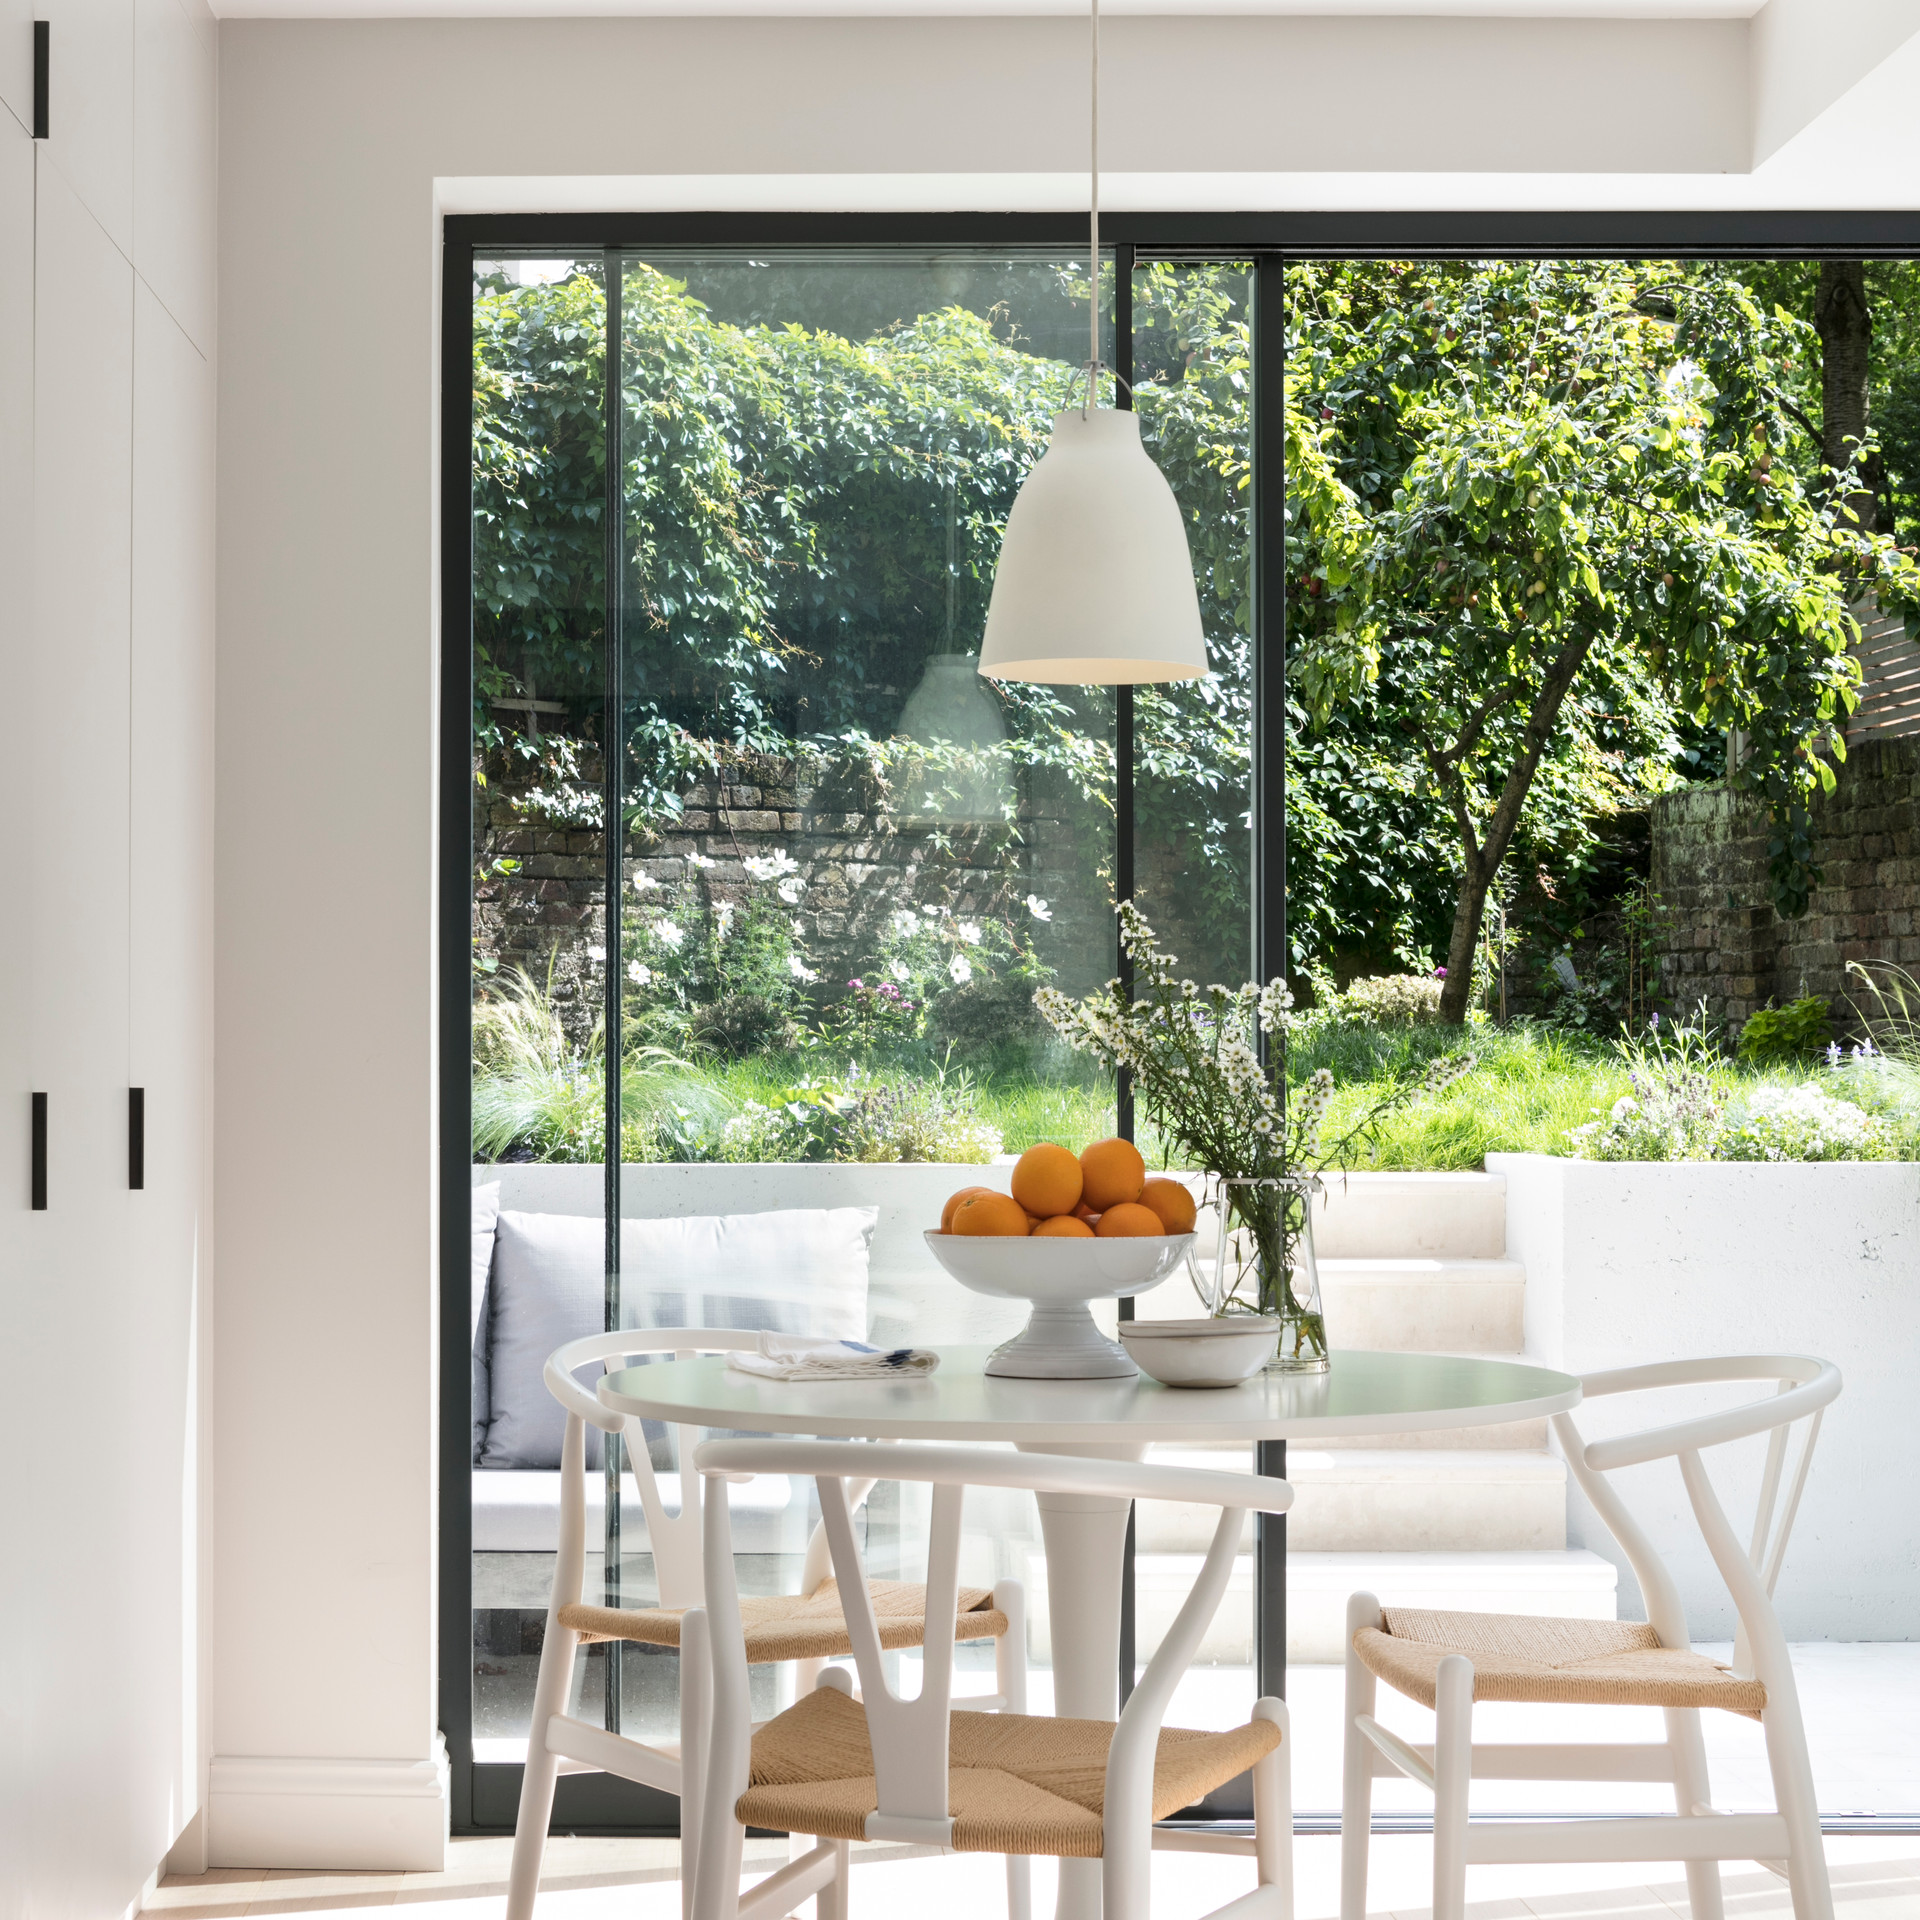 Dining Area  - Design & Build by Freemand & Whitehouse